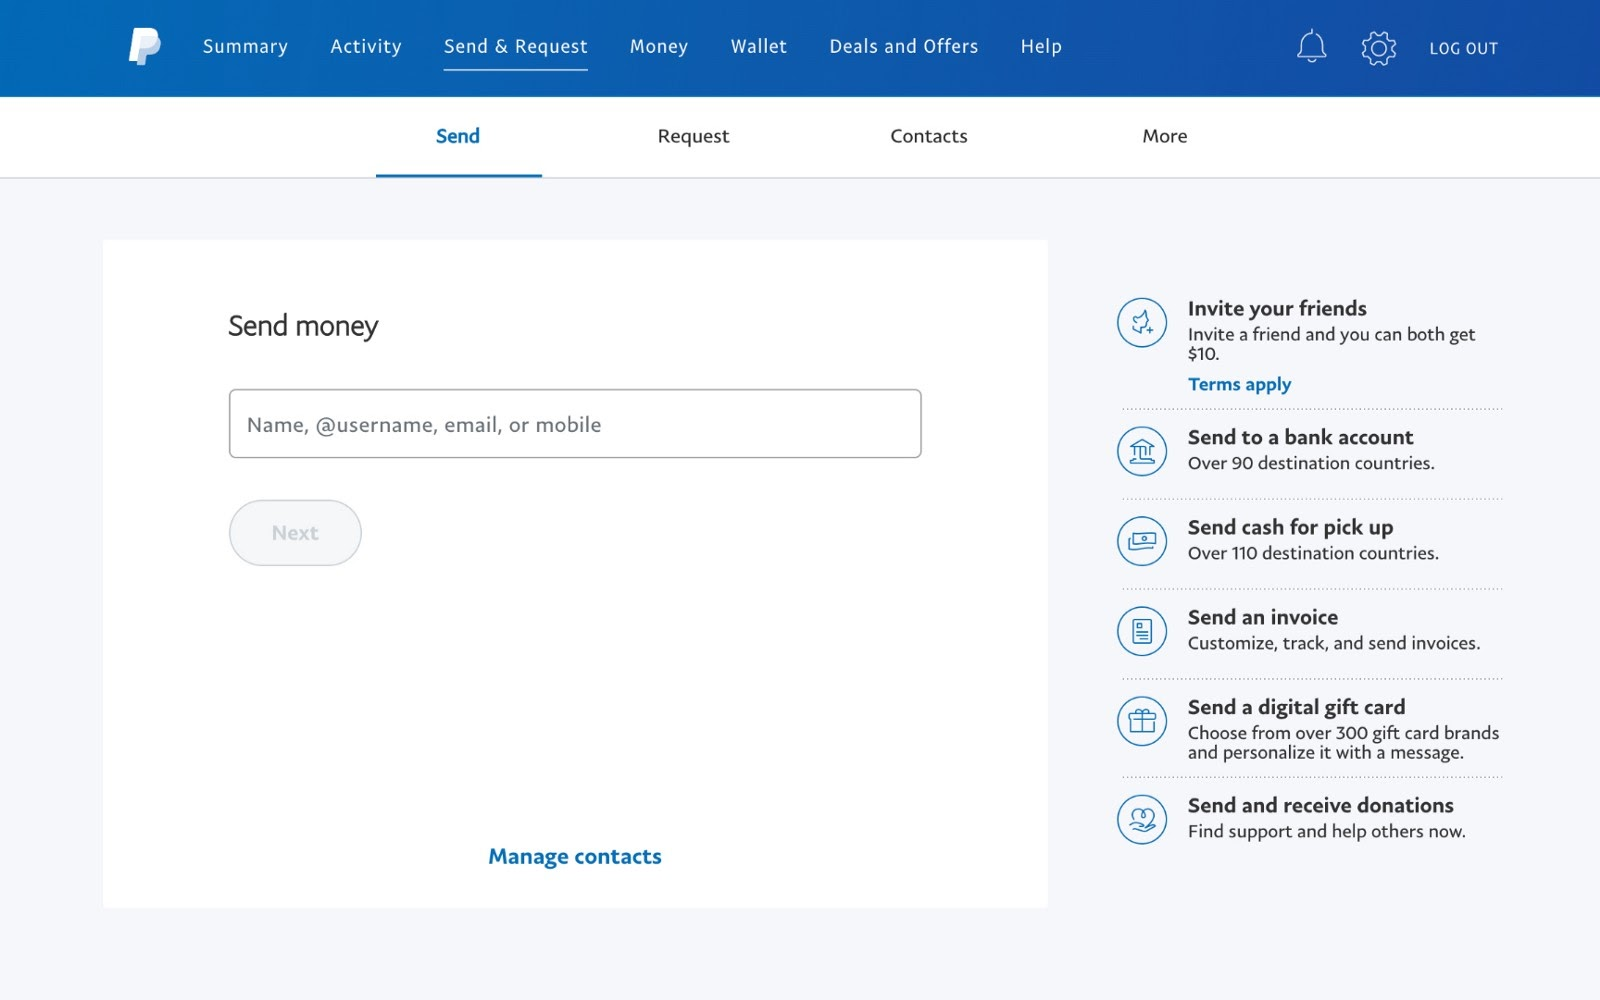 Paypal landing page for sending money